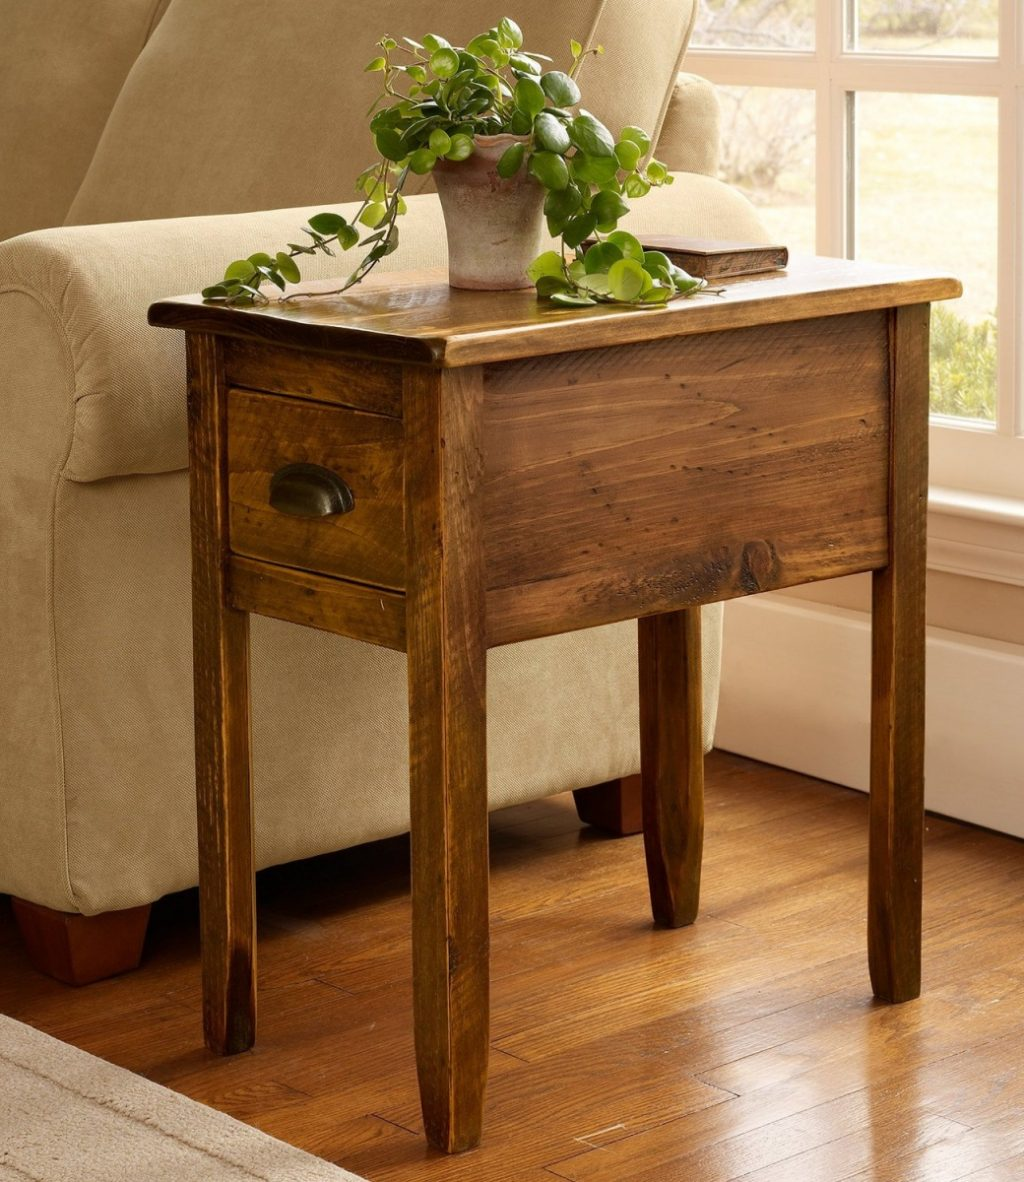 rustic wooden side tables with storage for living room end tables ...